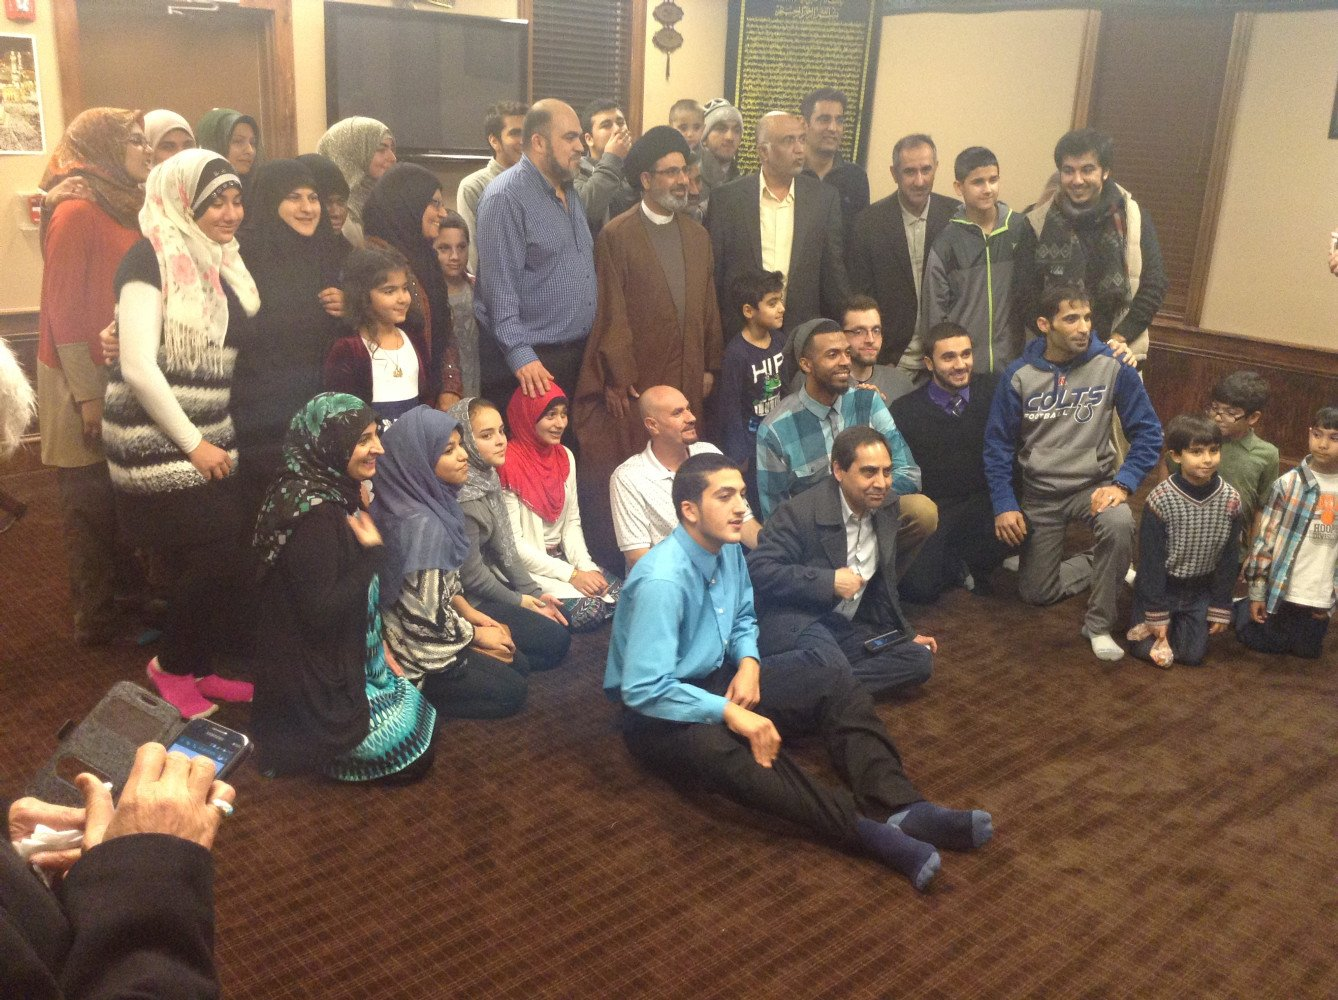 Sponsor of lecture event by Imam Qazwini at Indy Zainabia